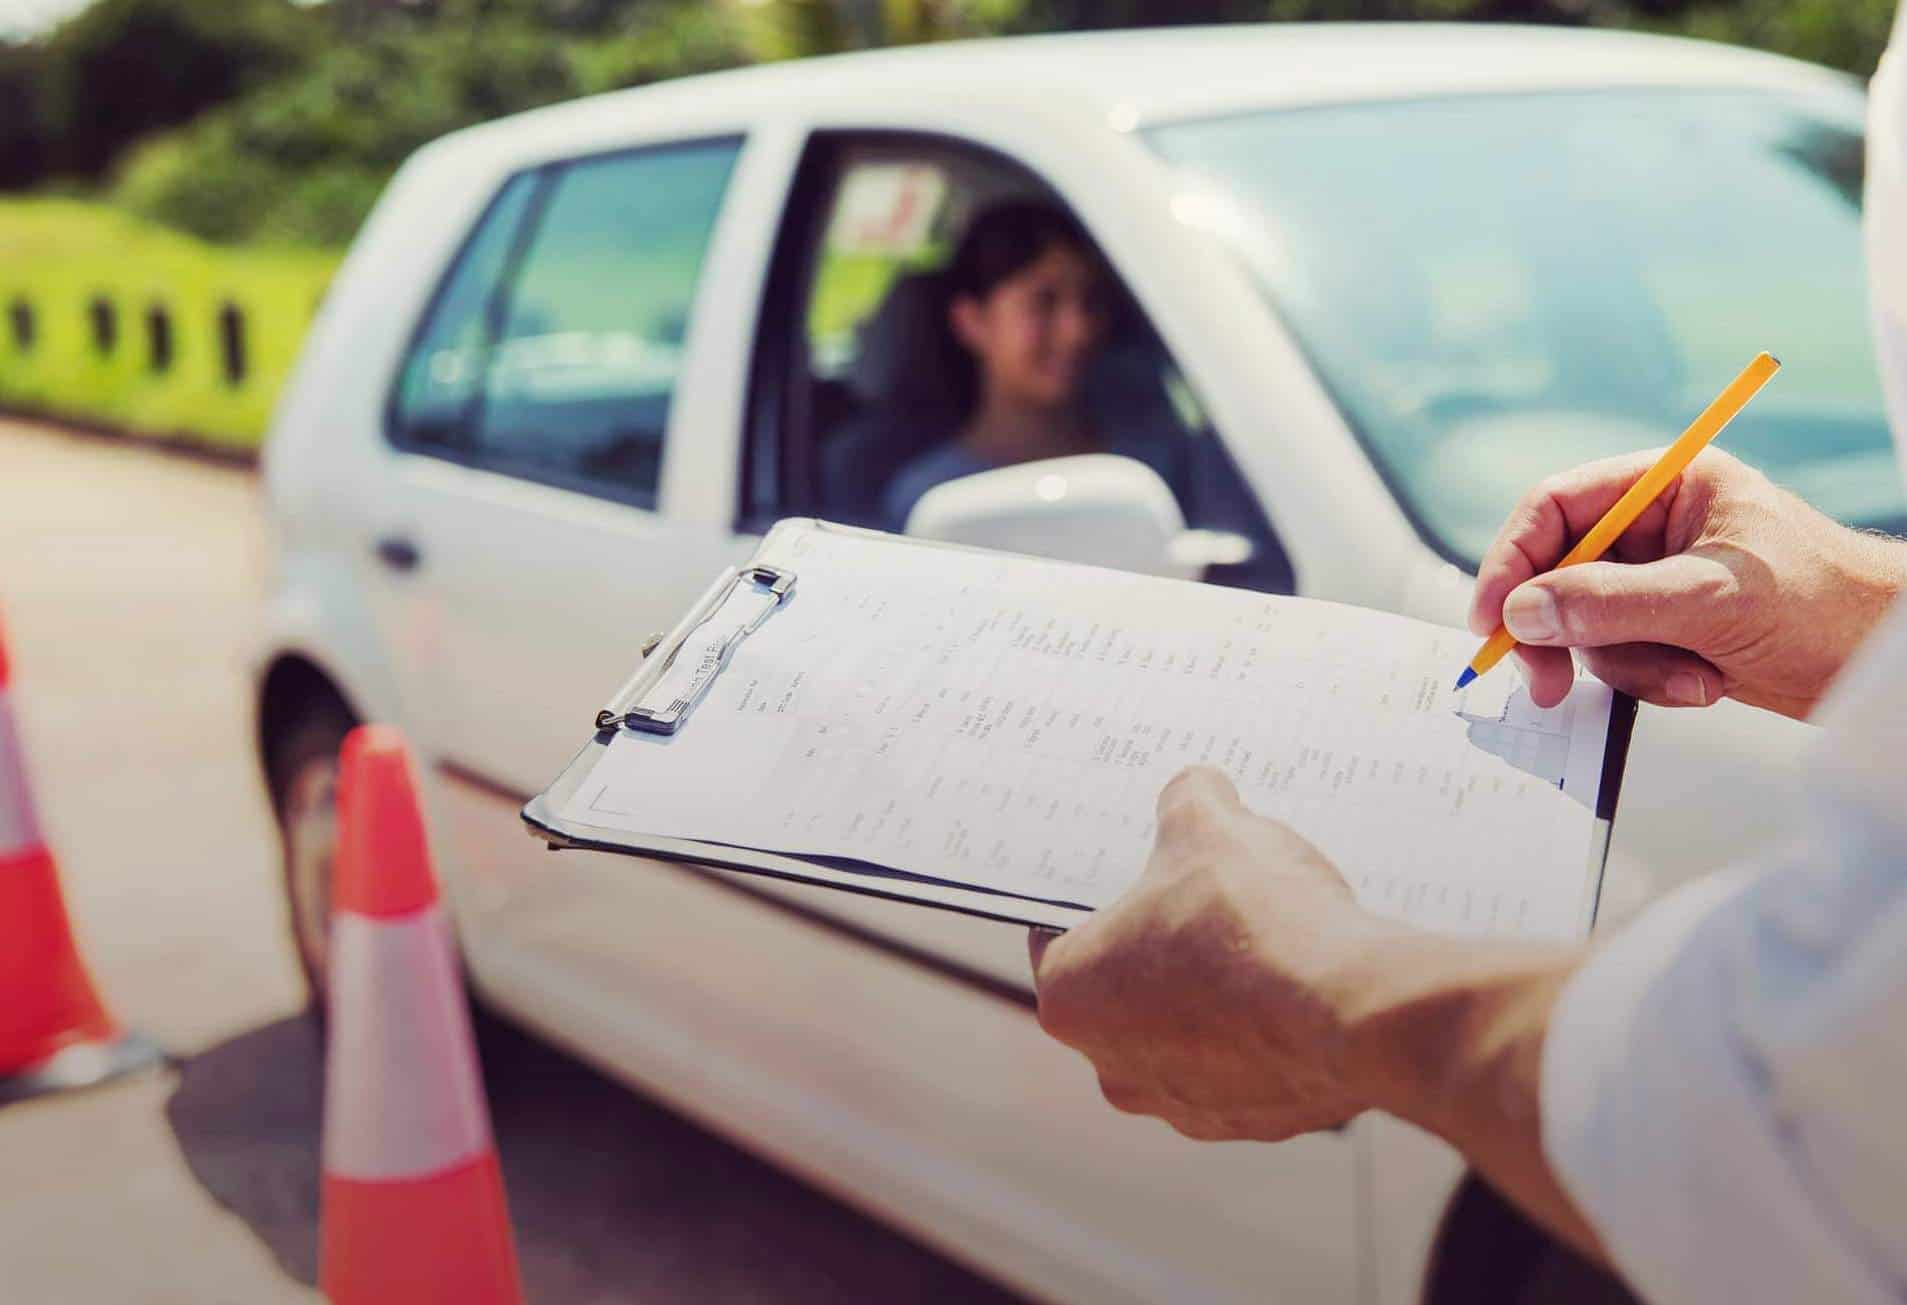 Driving Test Cancellation – Things You Need to Know